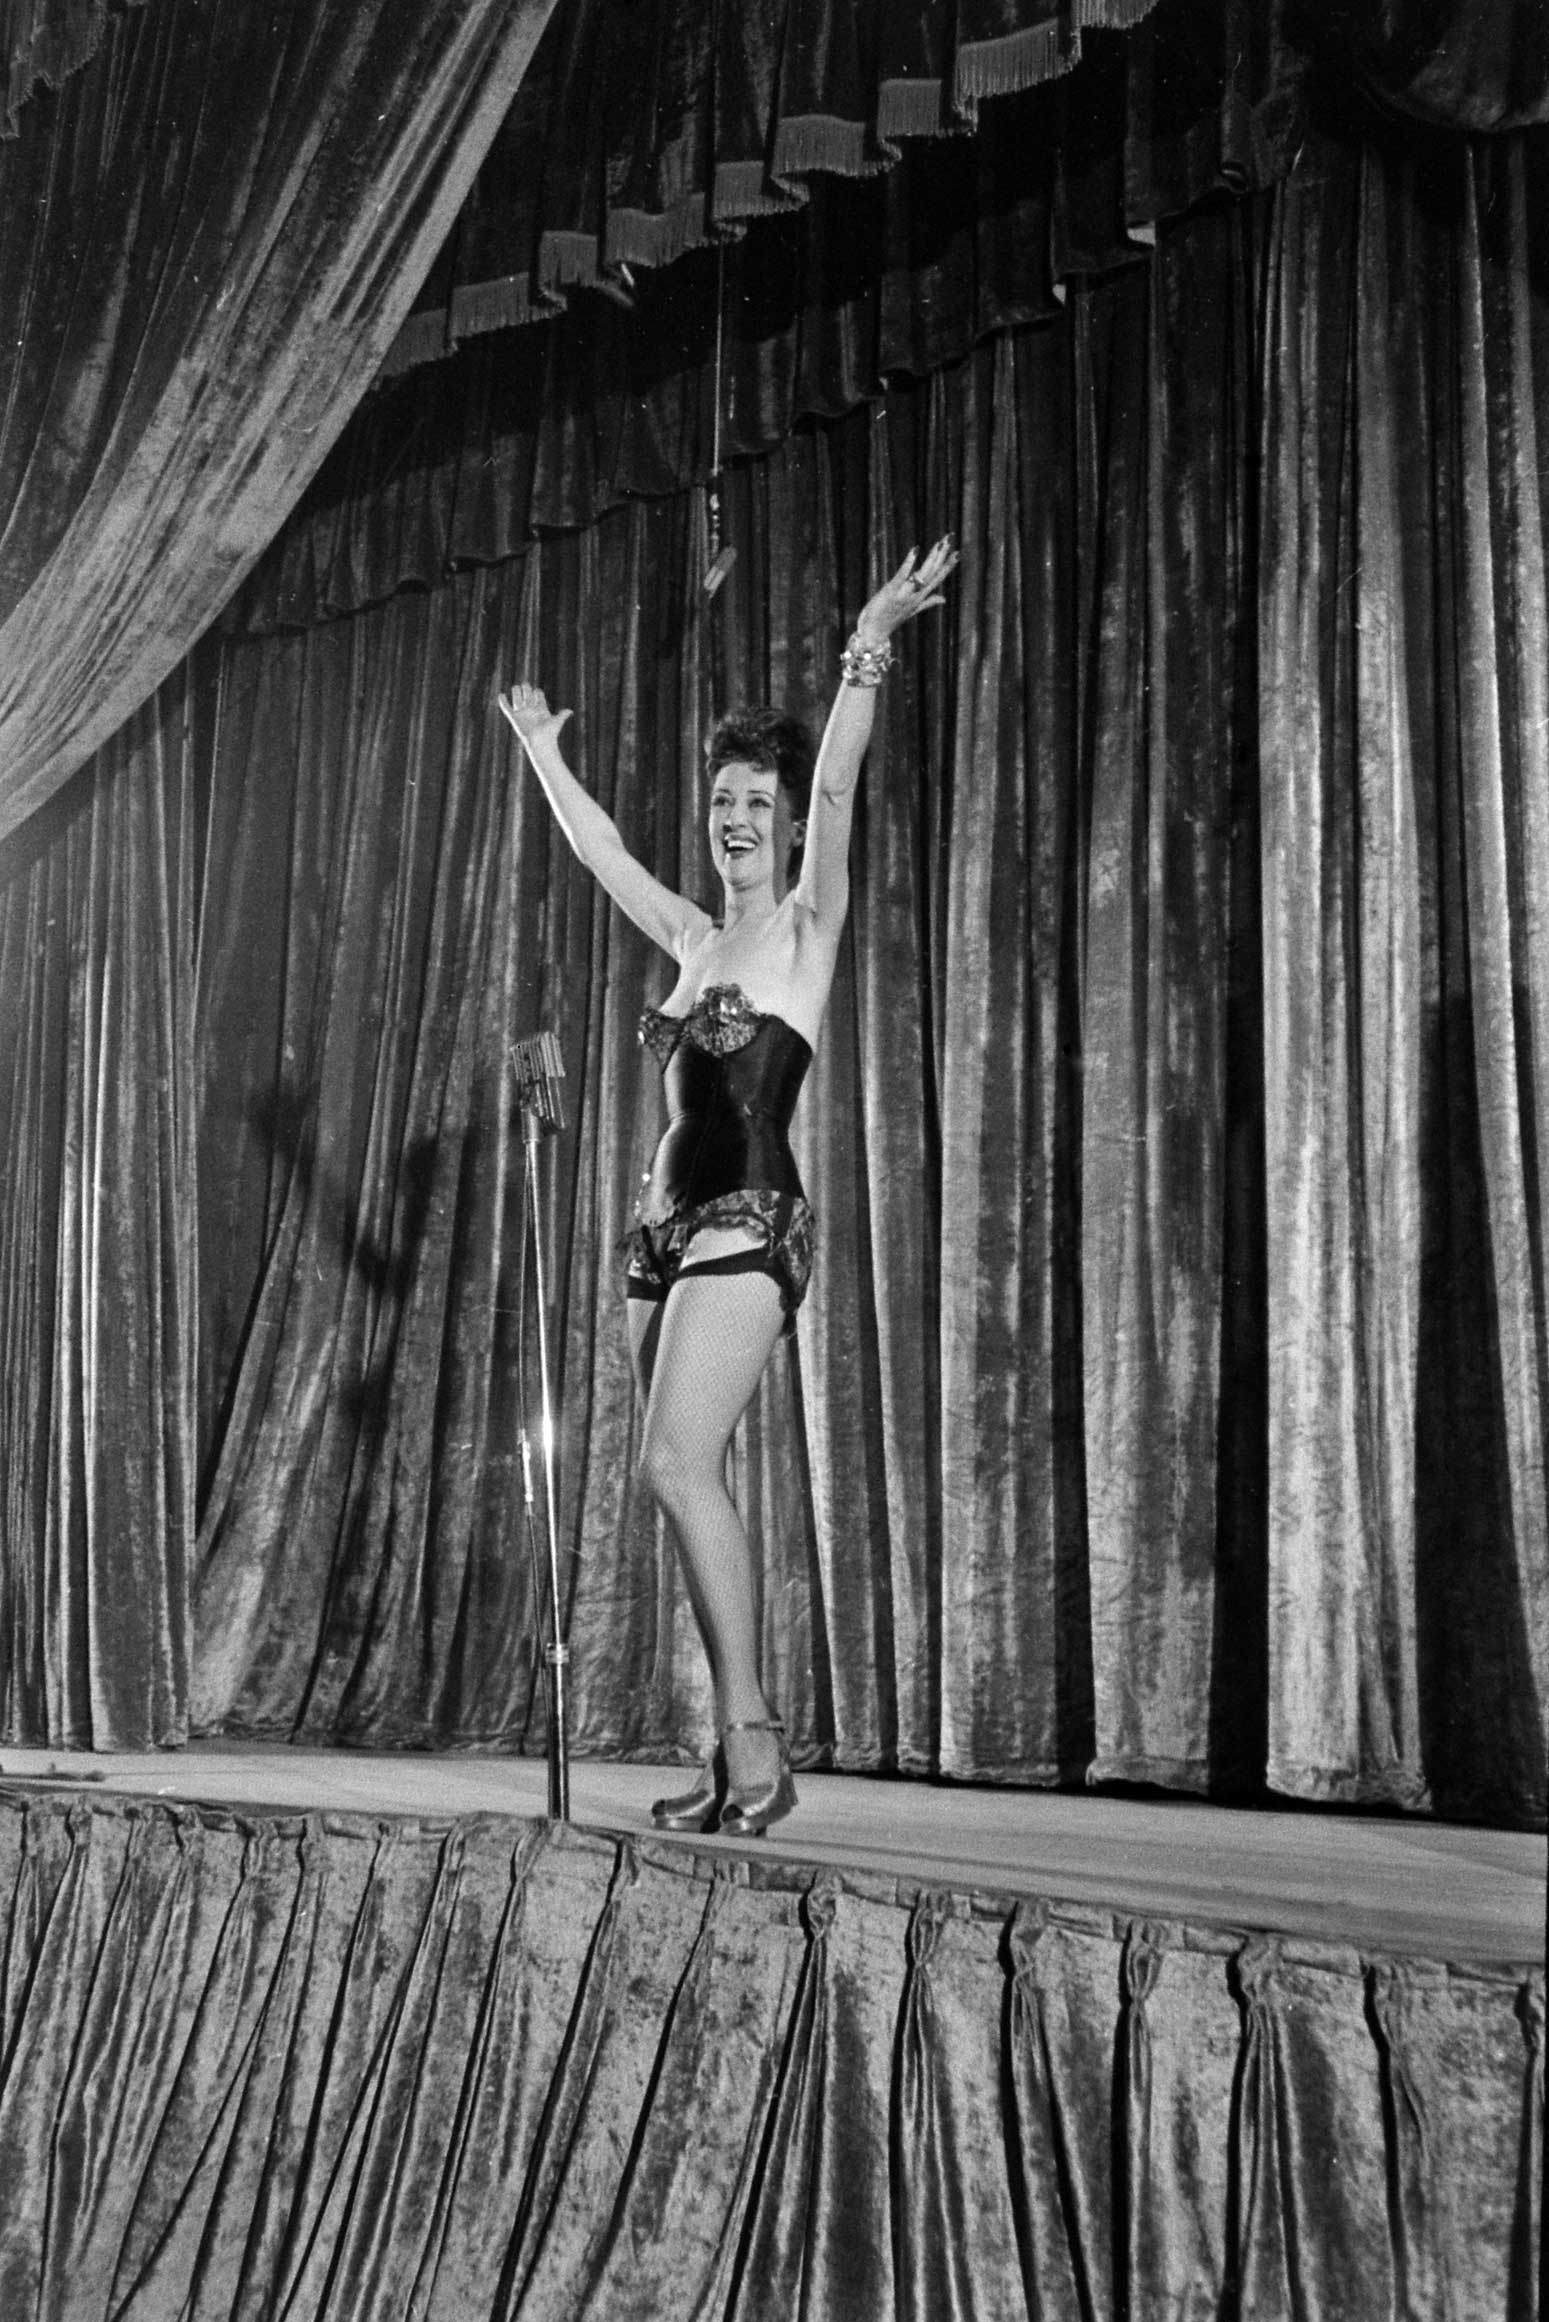 <b>Not published in LIFE.</b> Gypsy Rose Lee burlesque show in Memphis, Tenn., 1949.